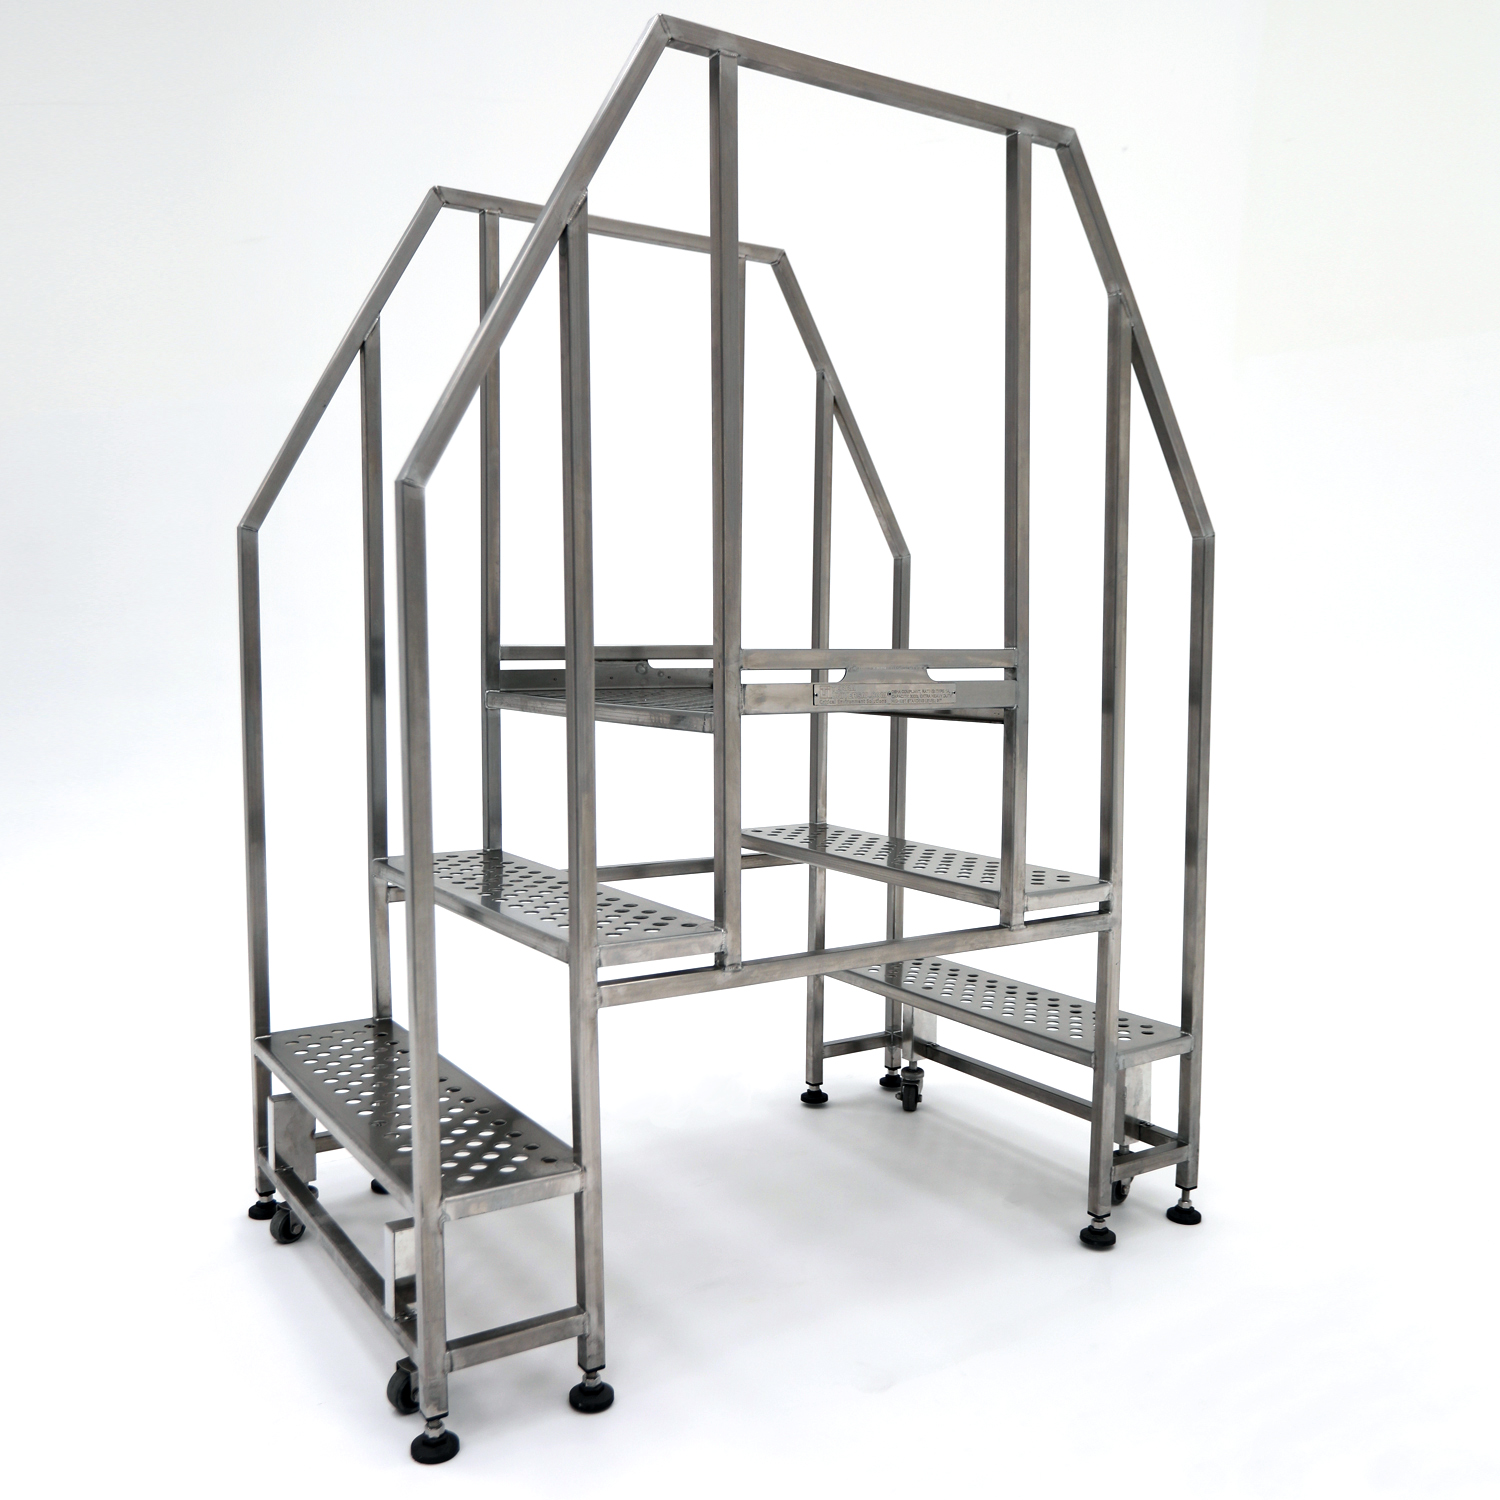 Portable BioSafe Crossover Stairs